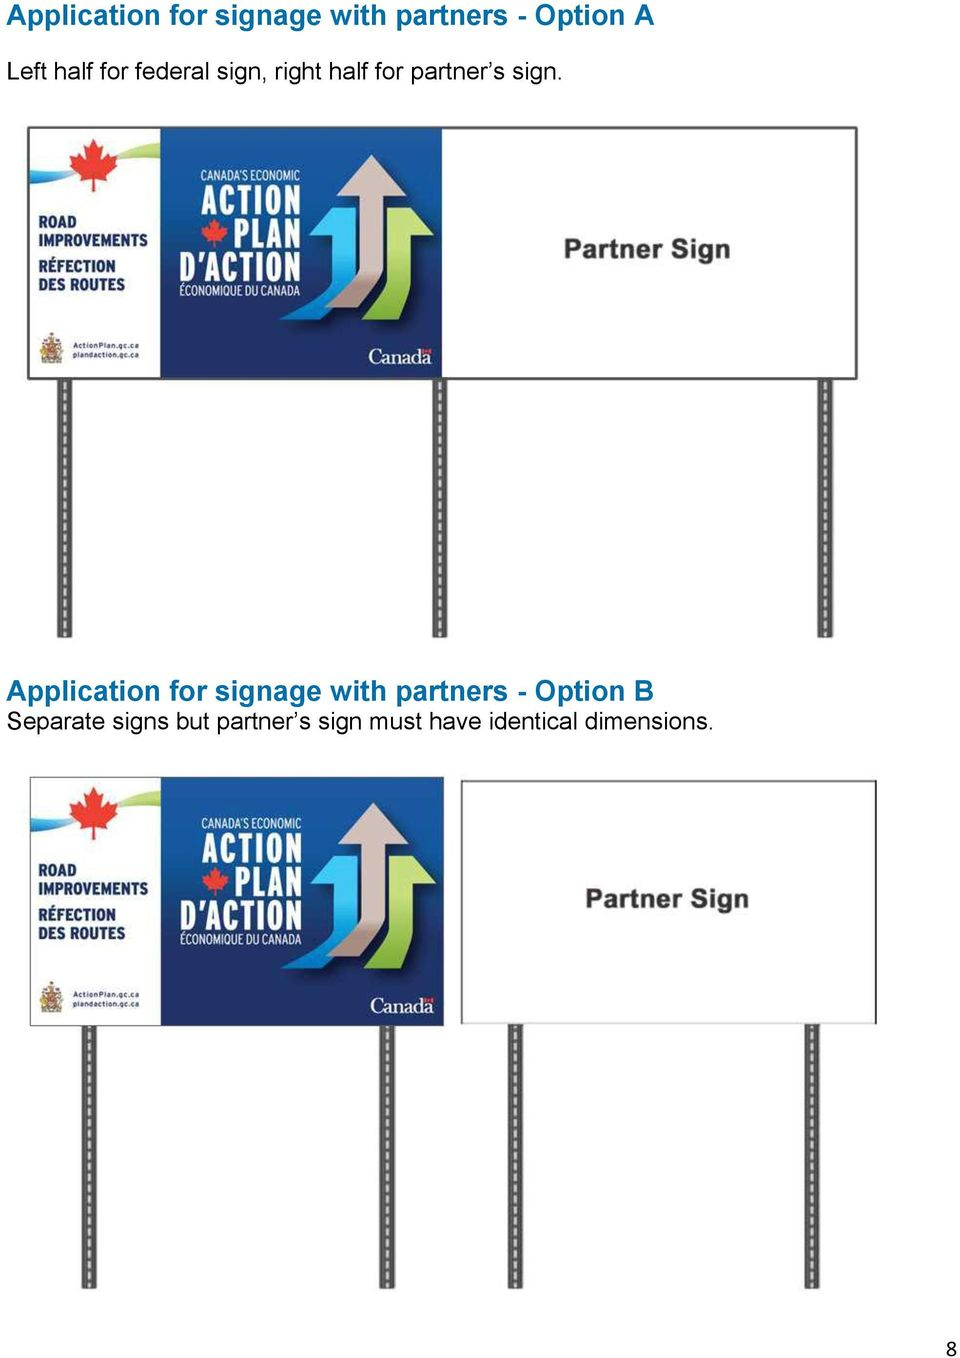 Application for signage with partners - Option B